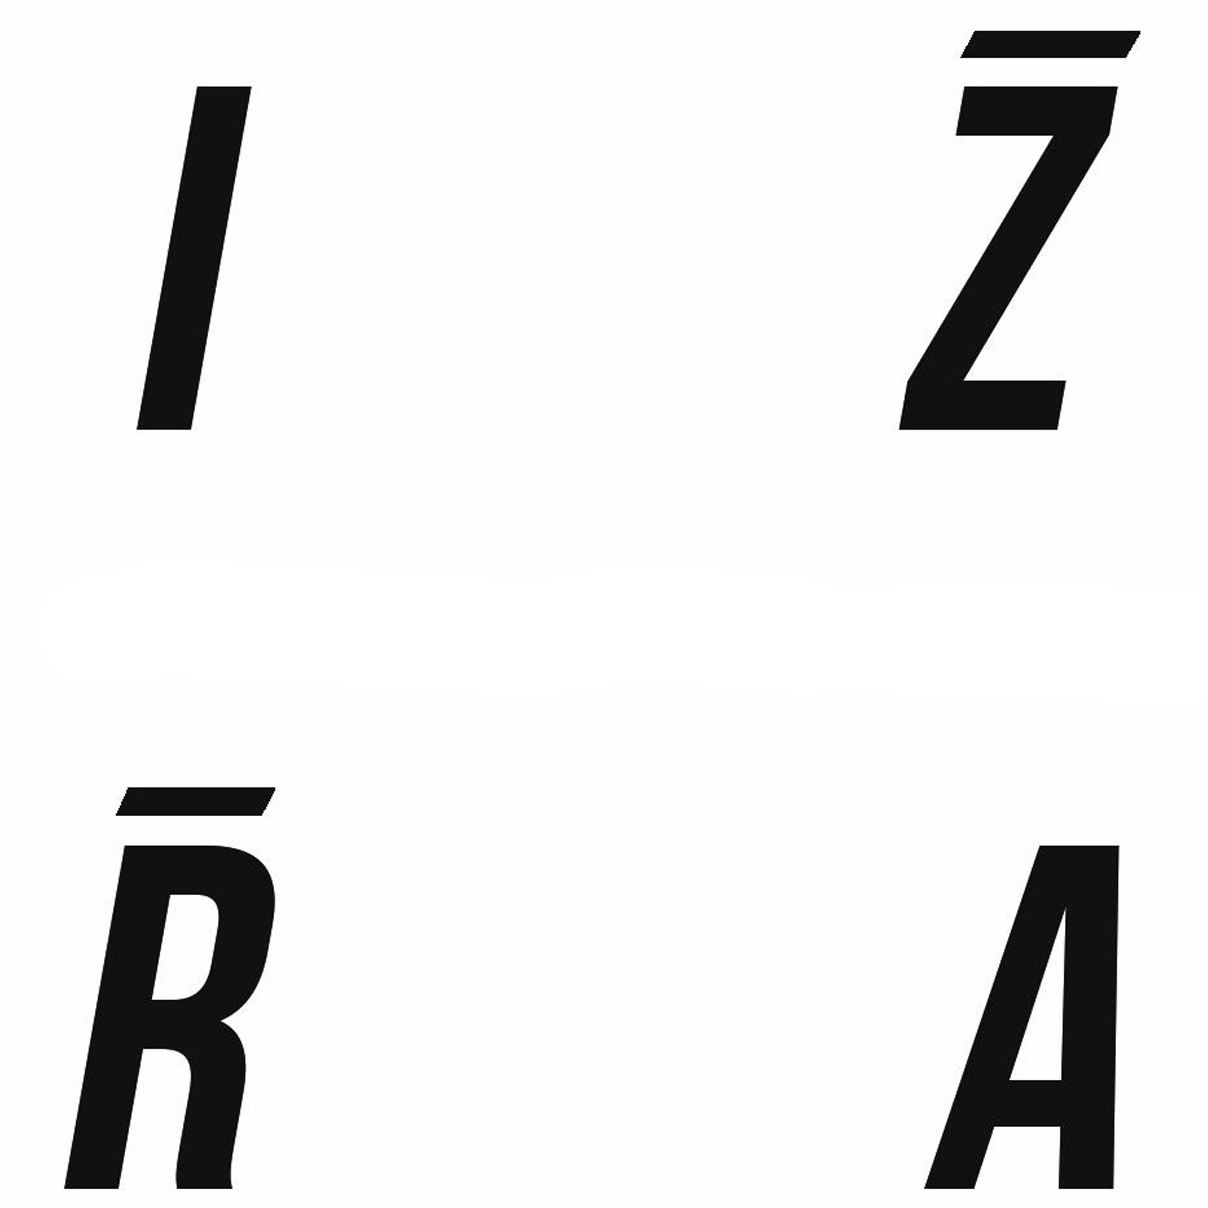 IZRA - RESILIENCE & PURPOSE